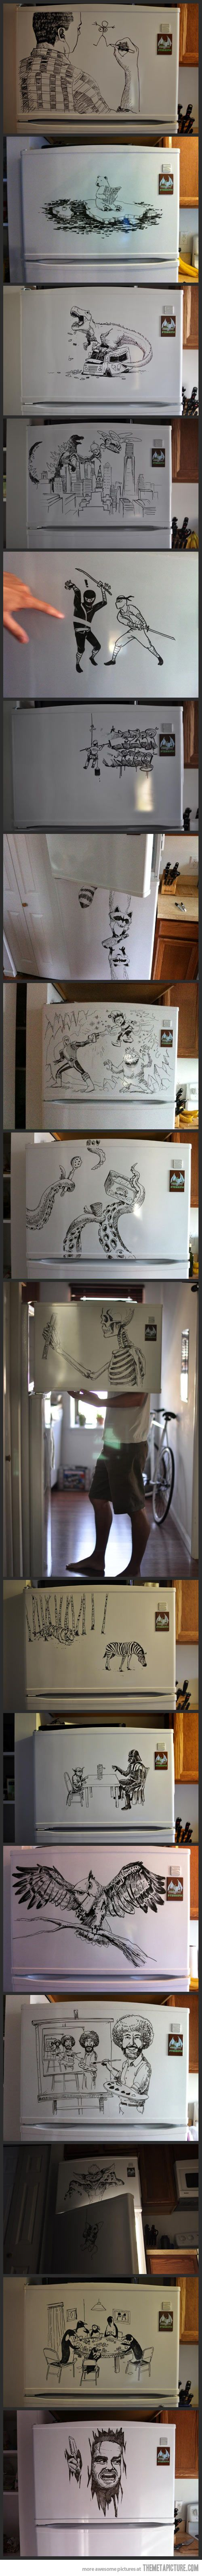 Freezer Art…awesome!